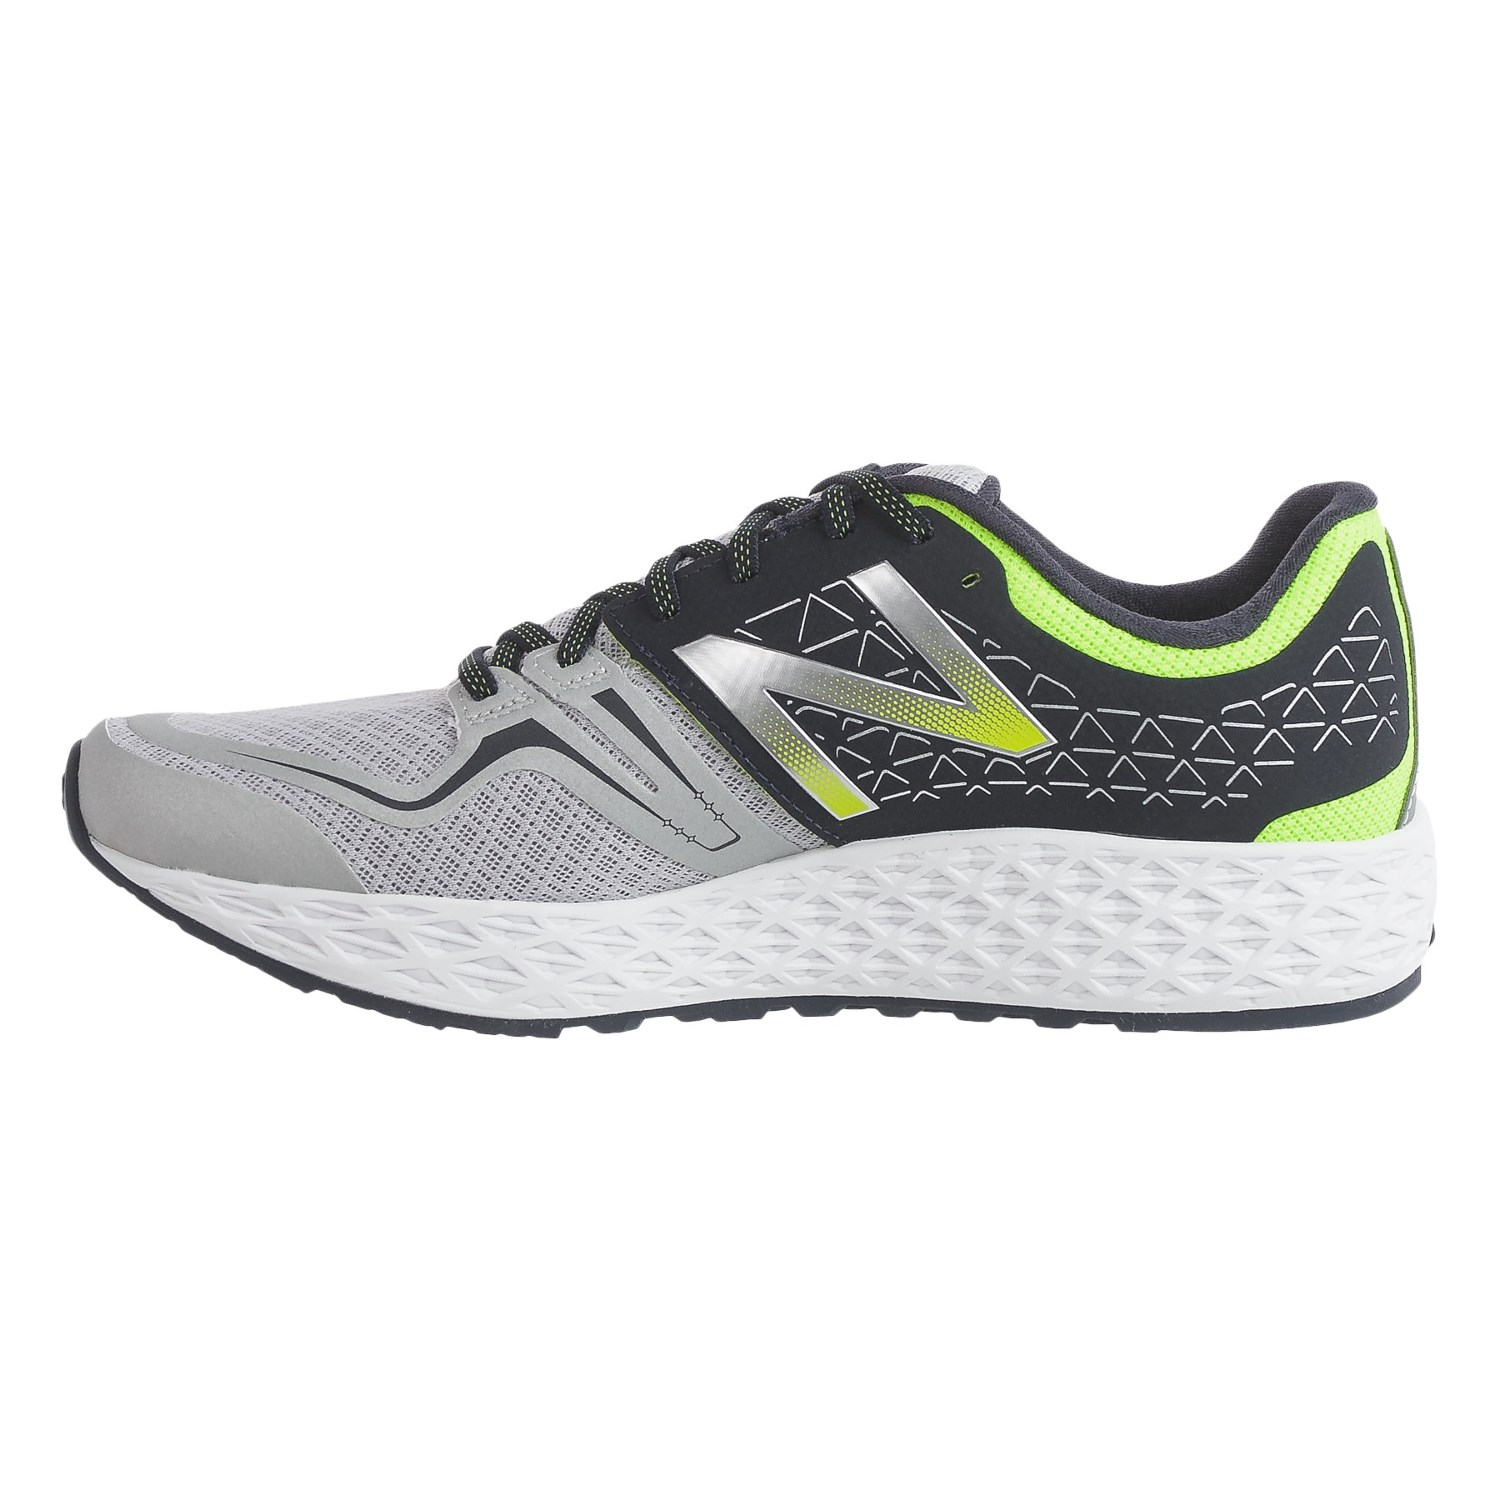 New Balance Fresh Foam Shoes Review